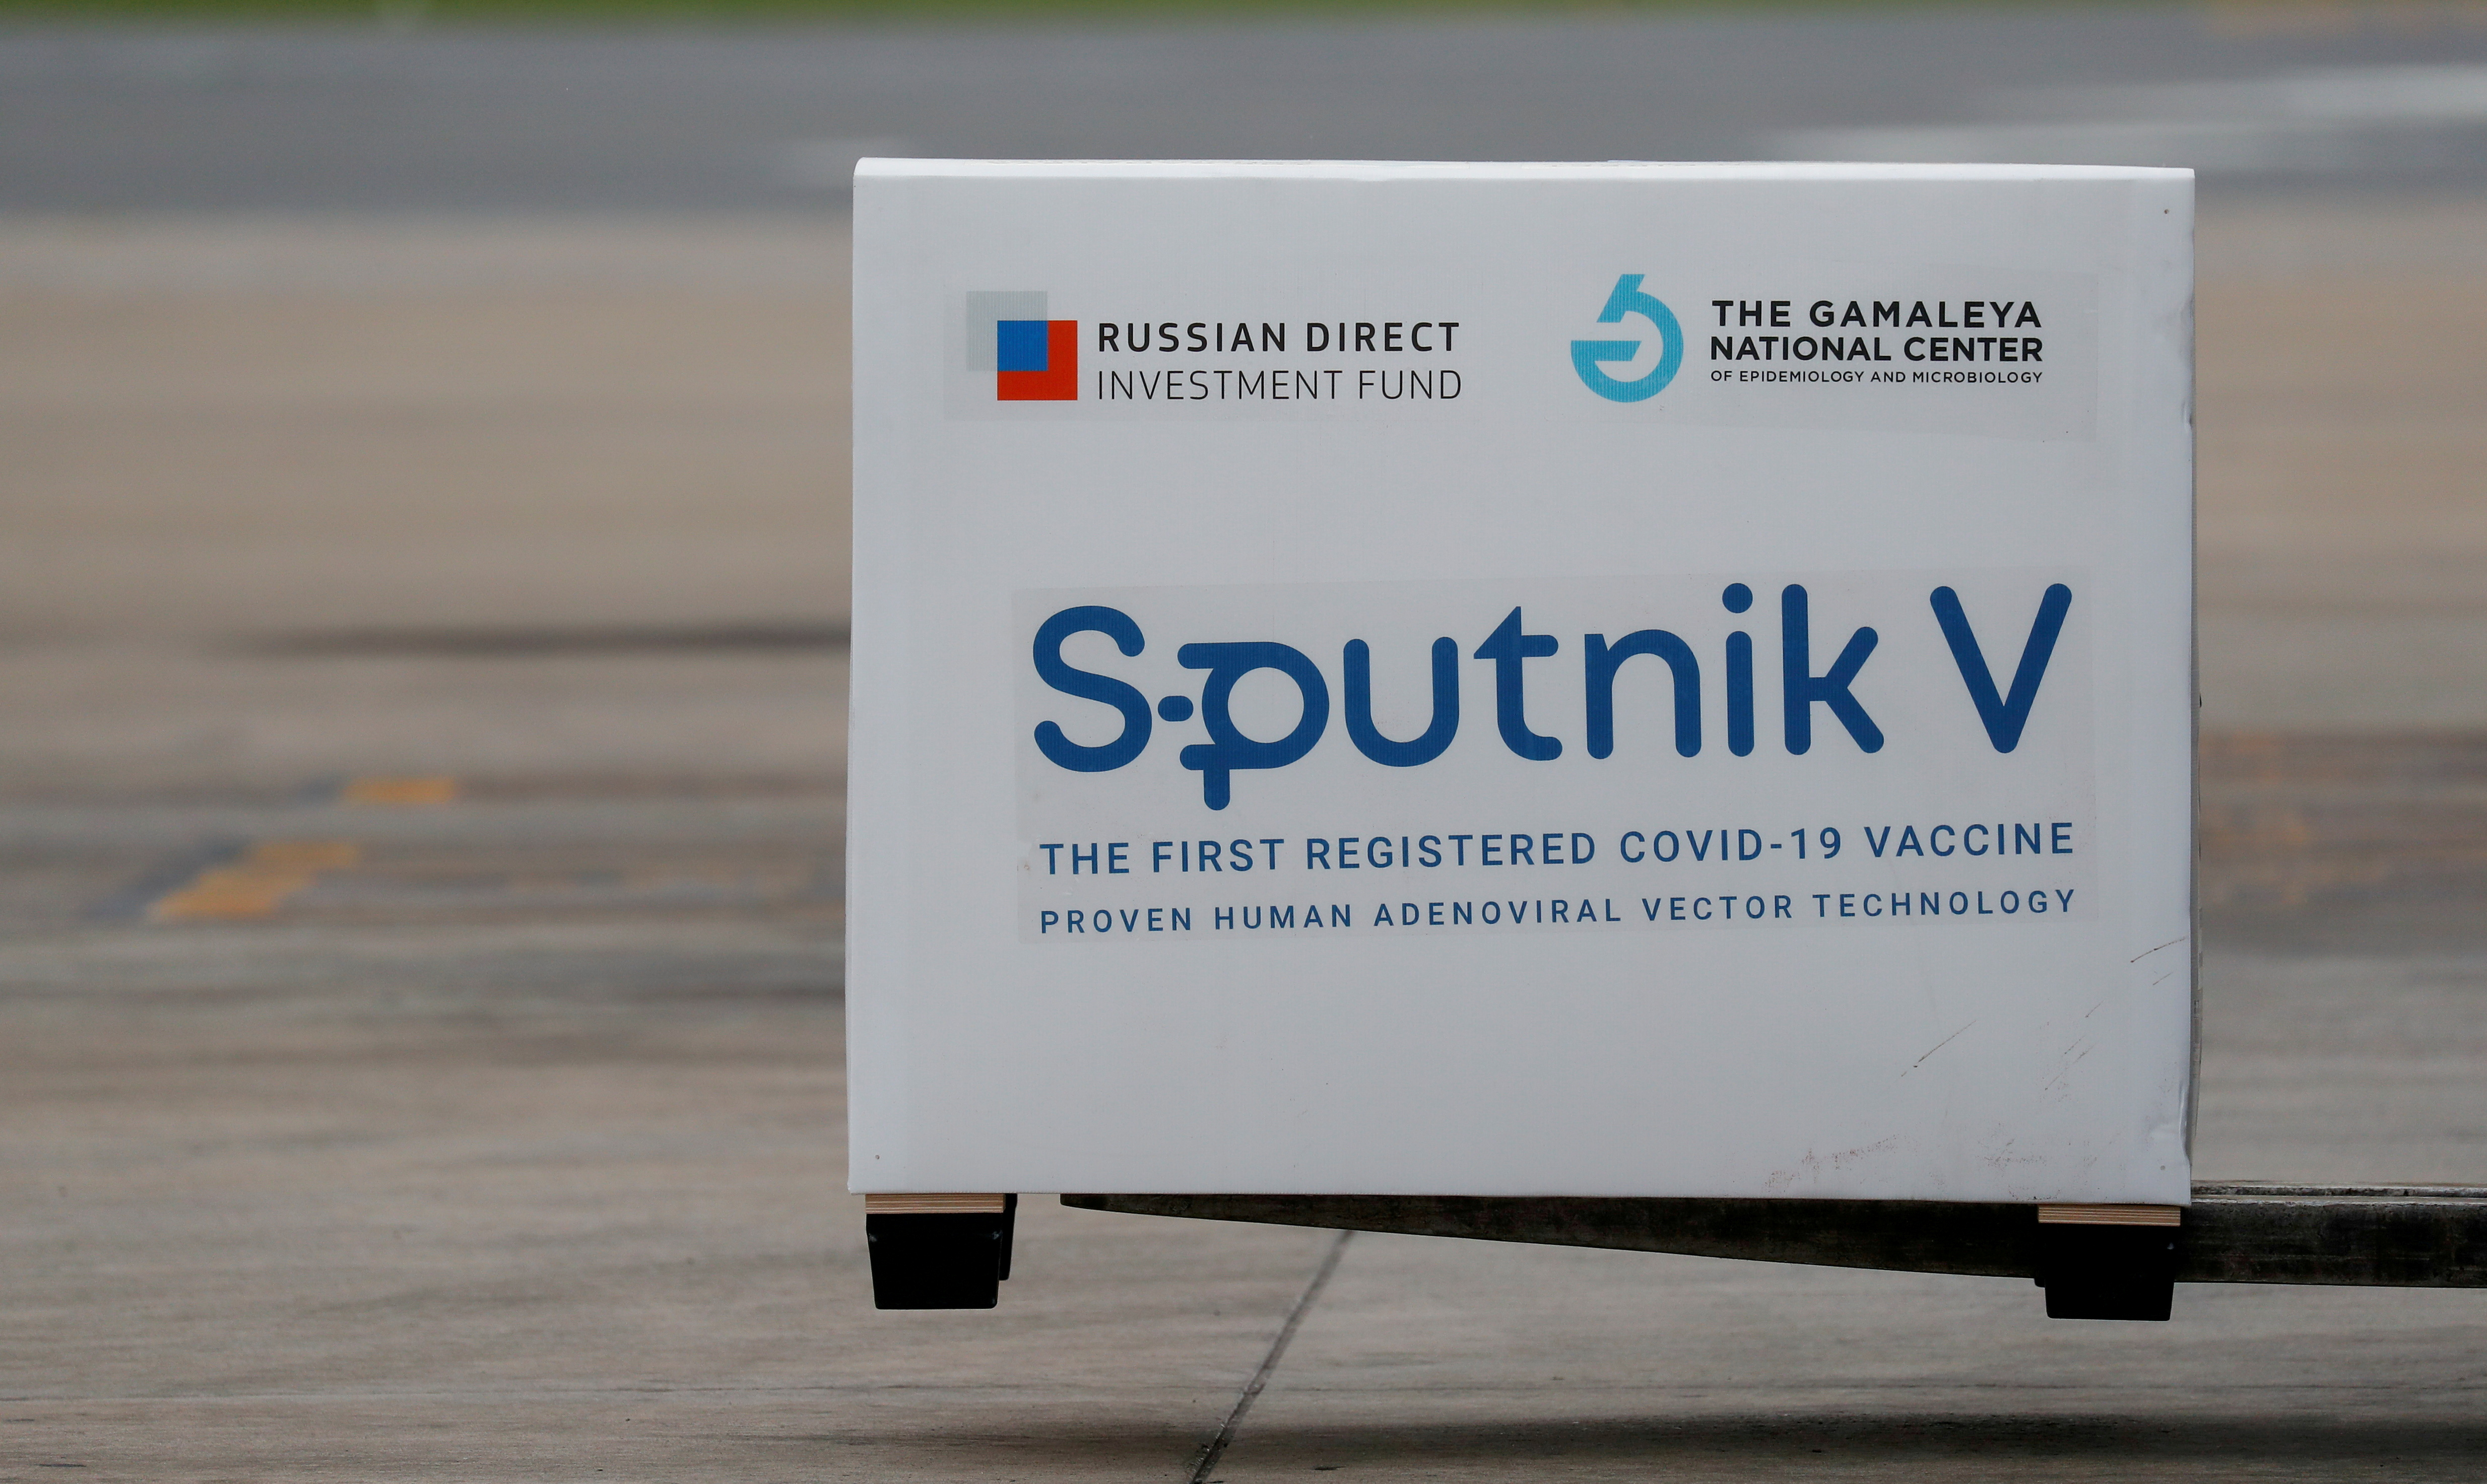 A shipment of doses of the Sputnik V (Gam-COVID-Vac) vaccine against the coronavirus disease (COVID-19) is seen after arriving at Ezeiza International Airport, in Buenos Aires, Argentina, January 28, 2021. REUTERS/Agustin Marcarian